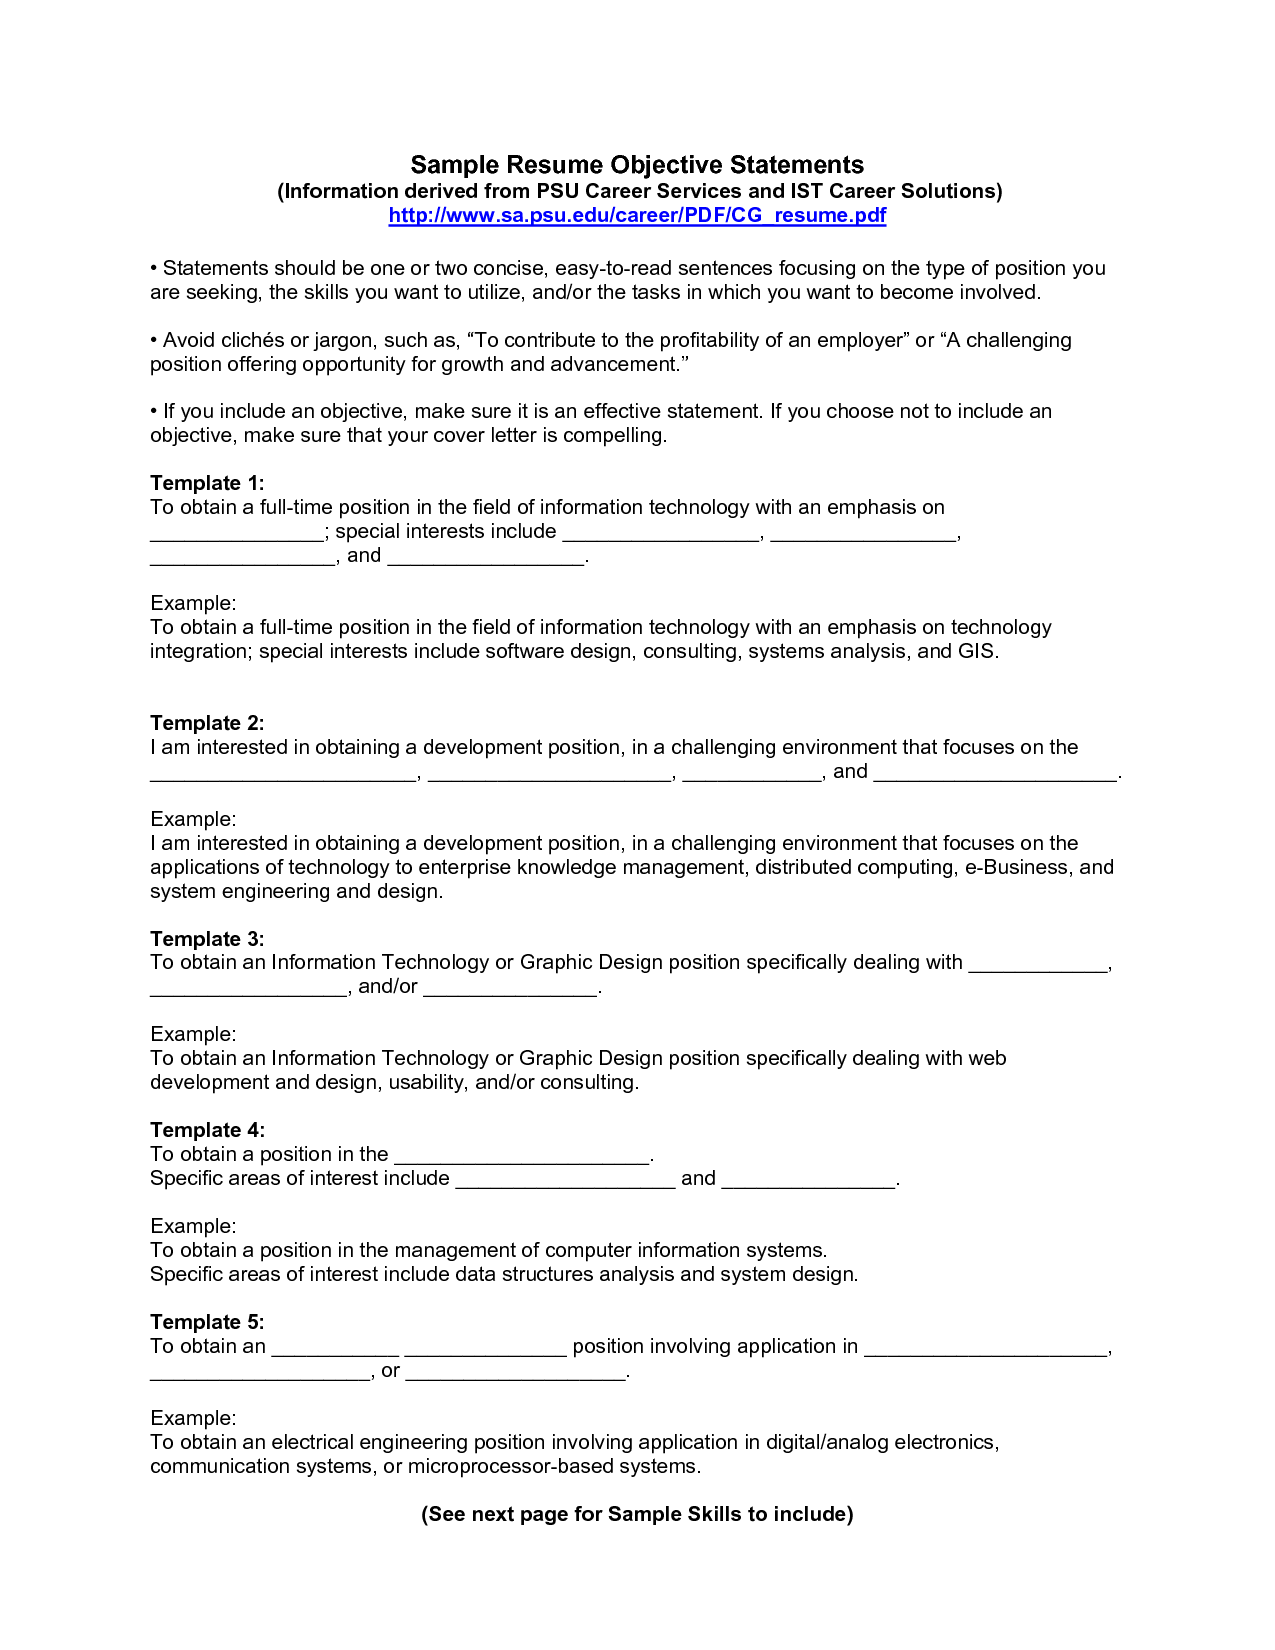 Narcotics Officer Sample Resume Custom Resume Objective Statement For Teacher  Httpwww.resumecareer .